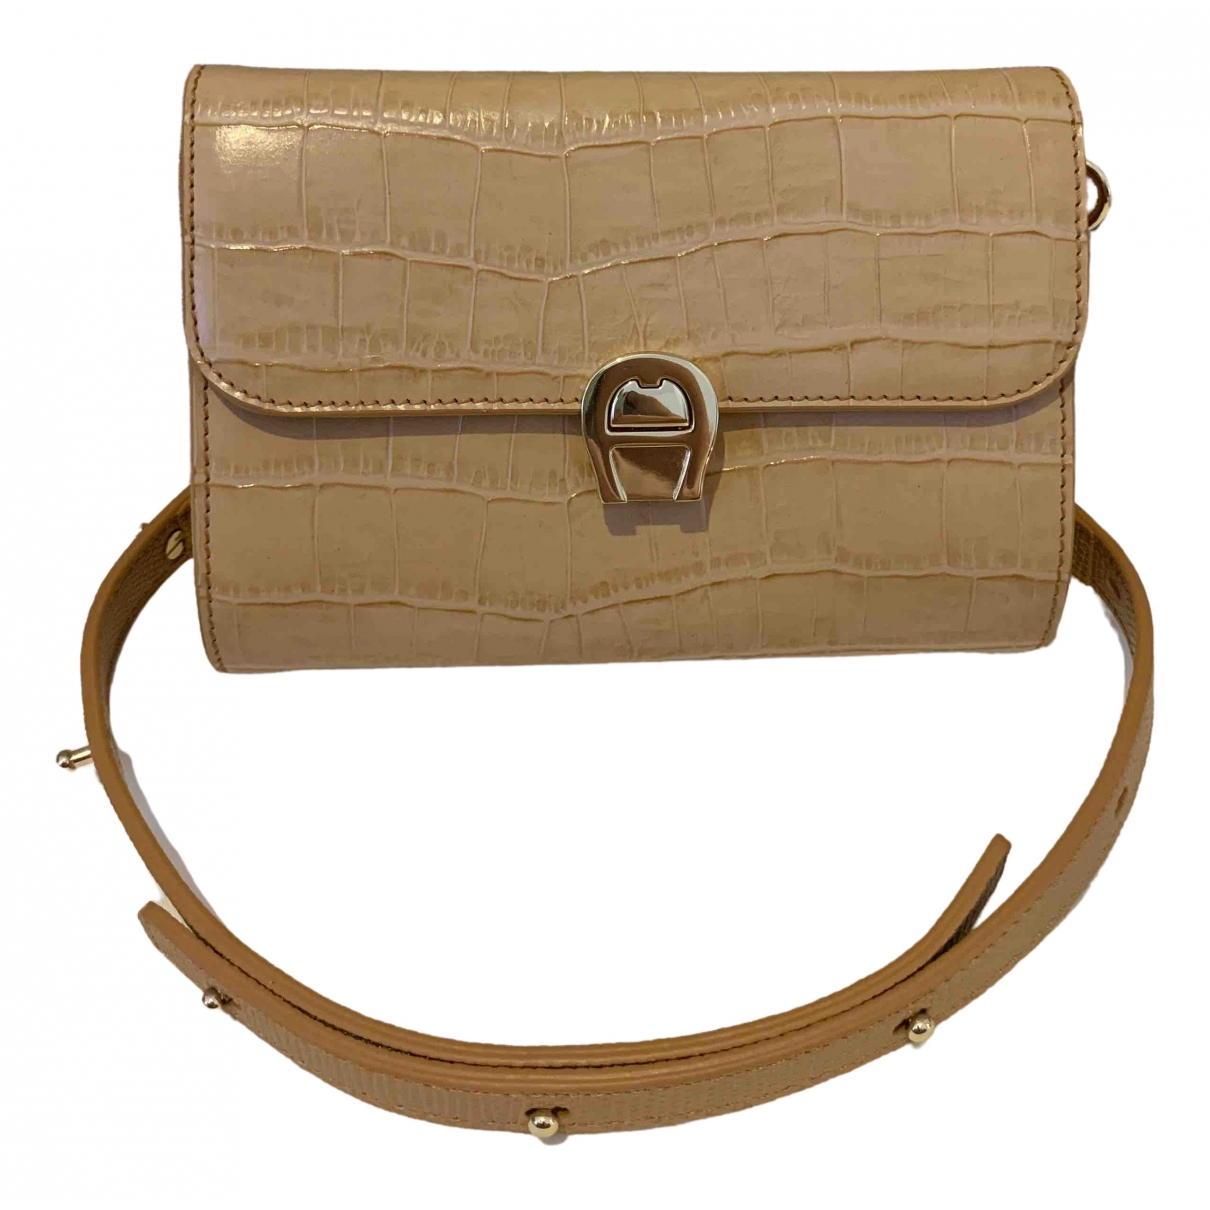 Aigner \N Beige Leather handbag for Women \N